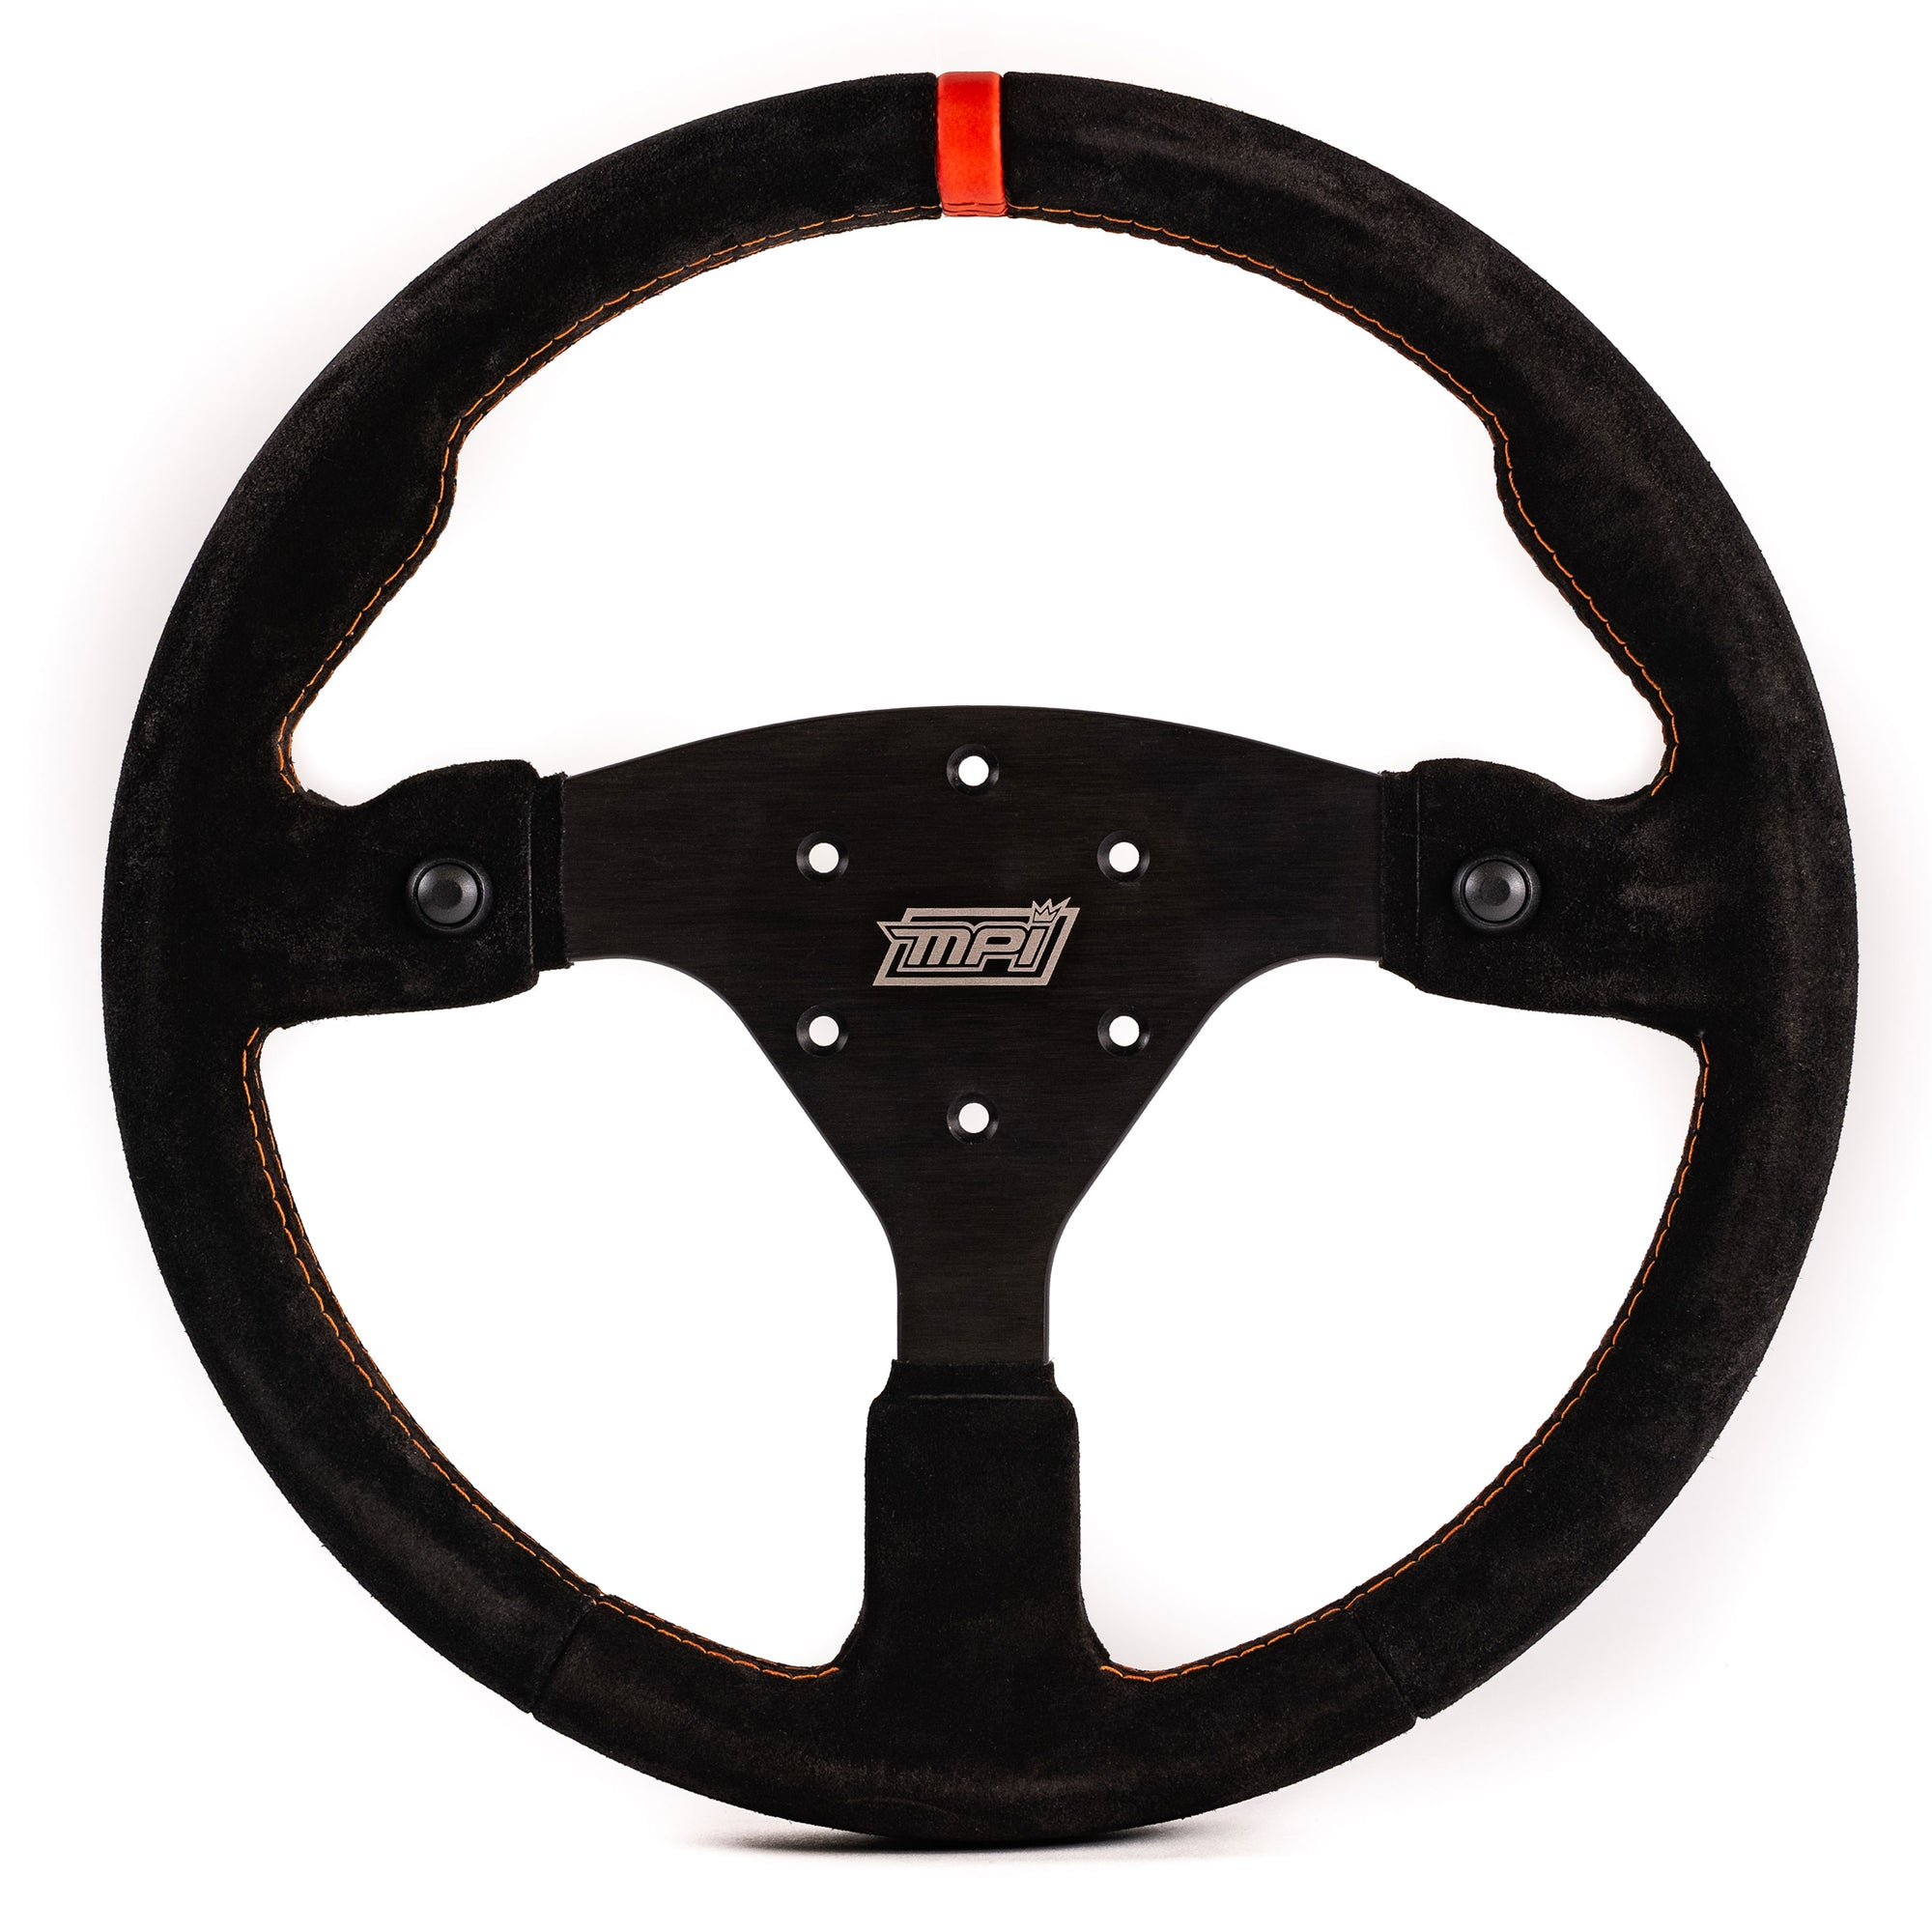 MPI Off Road Concept Specific Suede Steering Wheel w/Black Push Buttons (MPI-F-14-2B-BLK)-MPI-Motion Raceworks